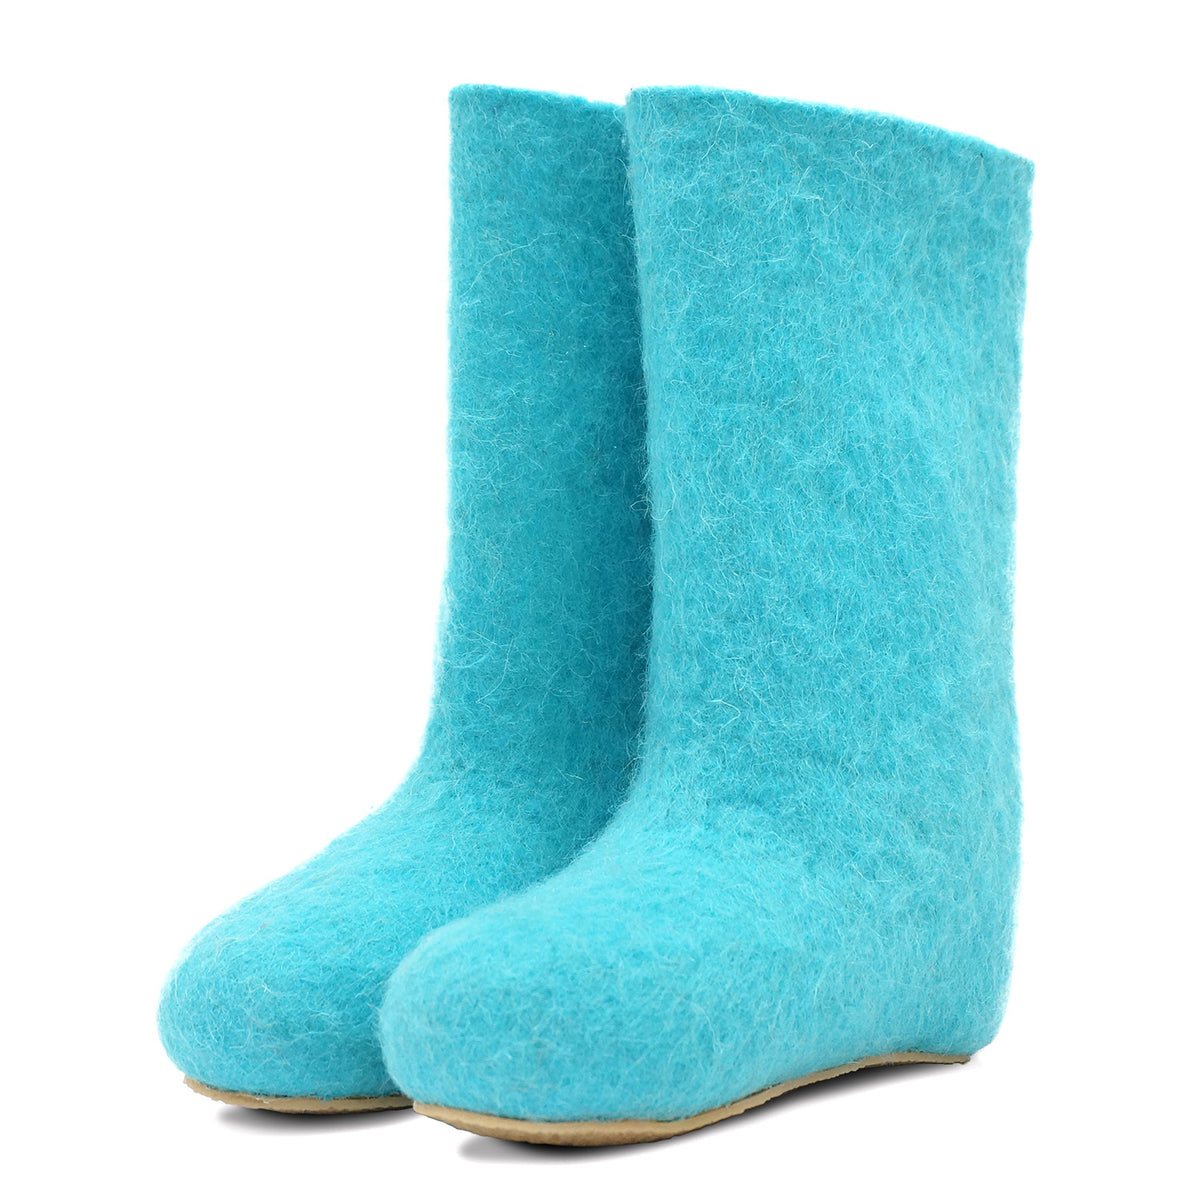 Valenki Women Basic Light Blue 24cm